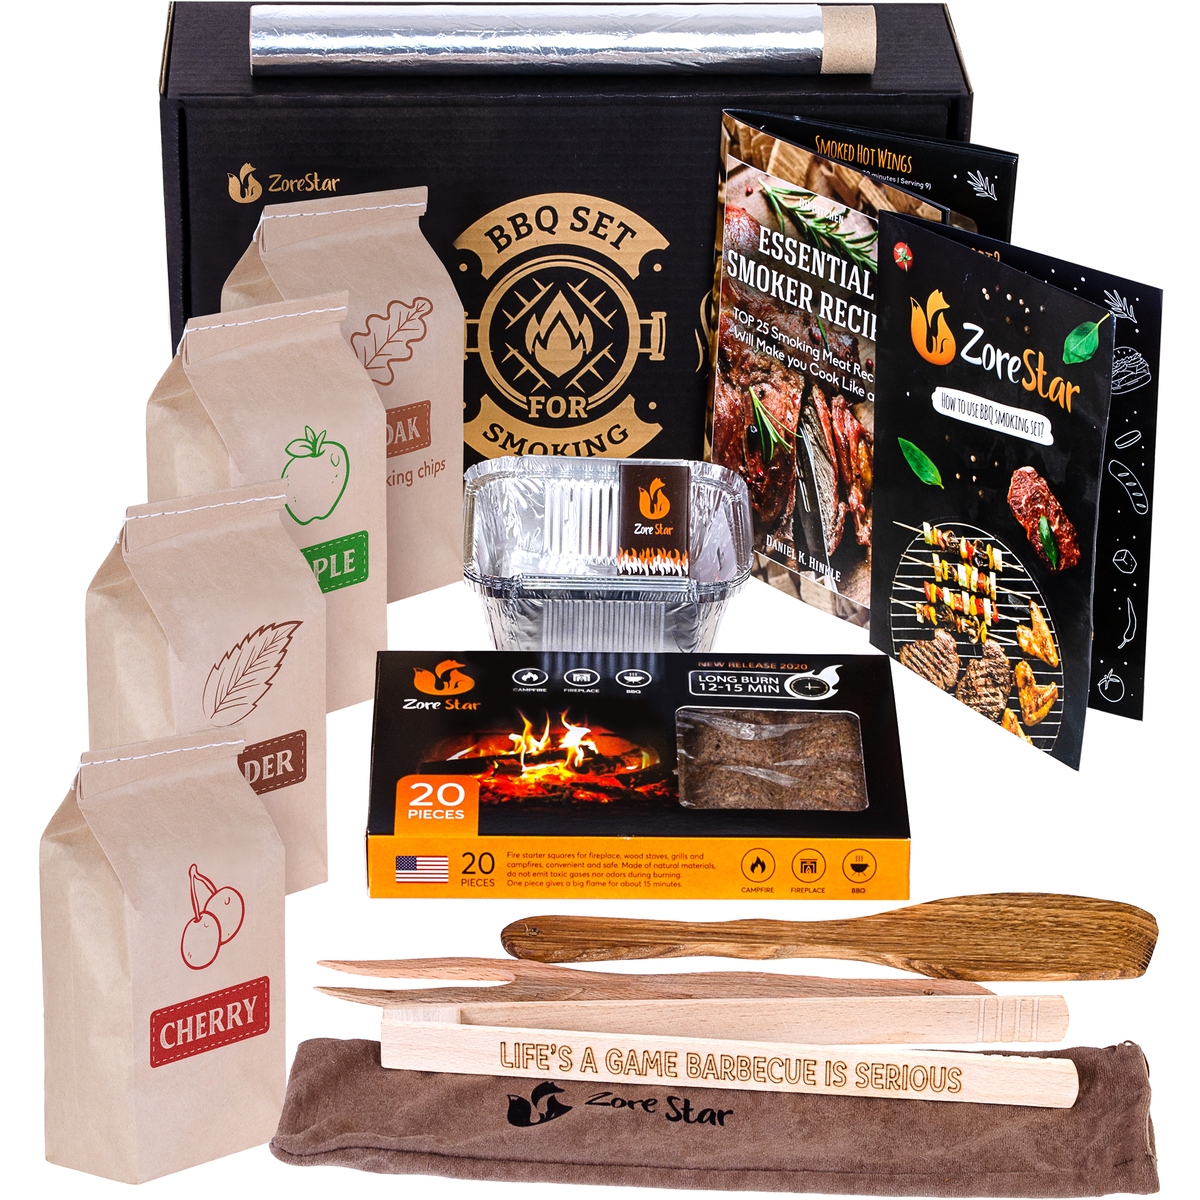 Grill cooking set for smoking: wood chips variety /smoker box / BBQ tools and other grilling accessories